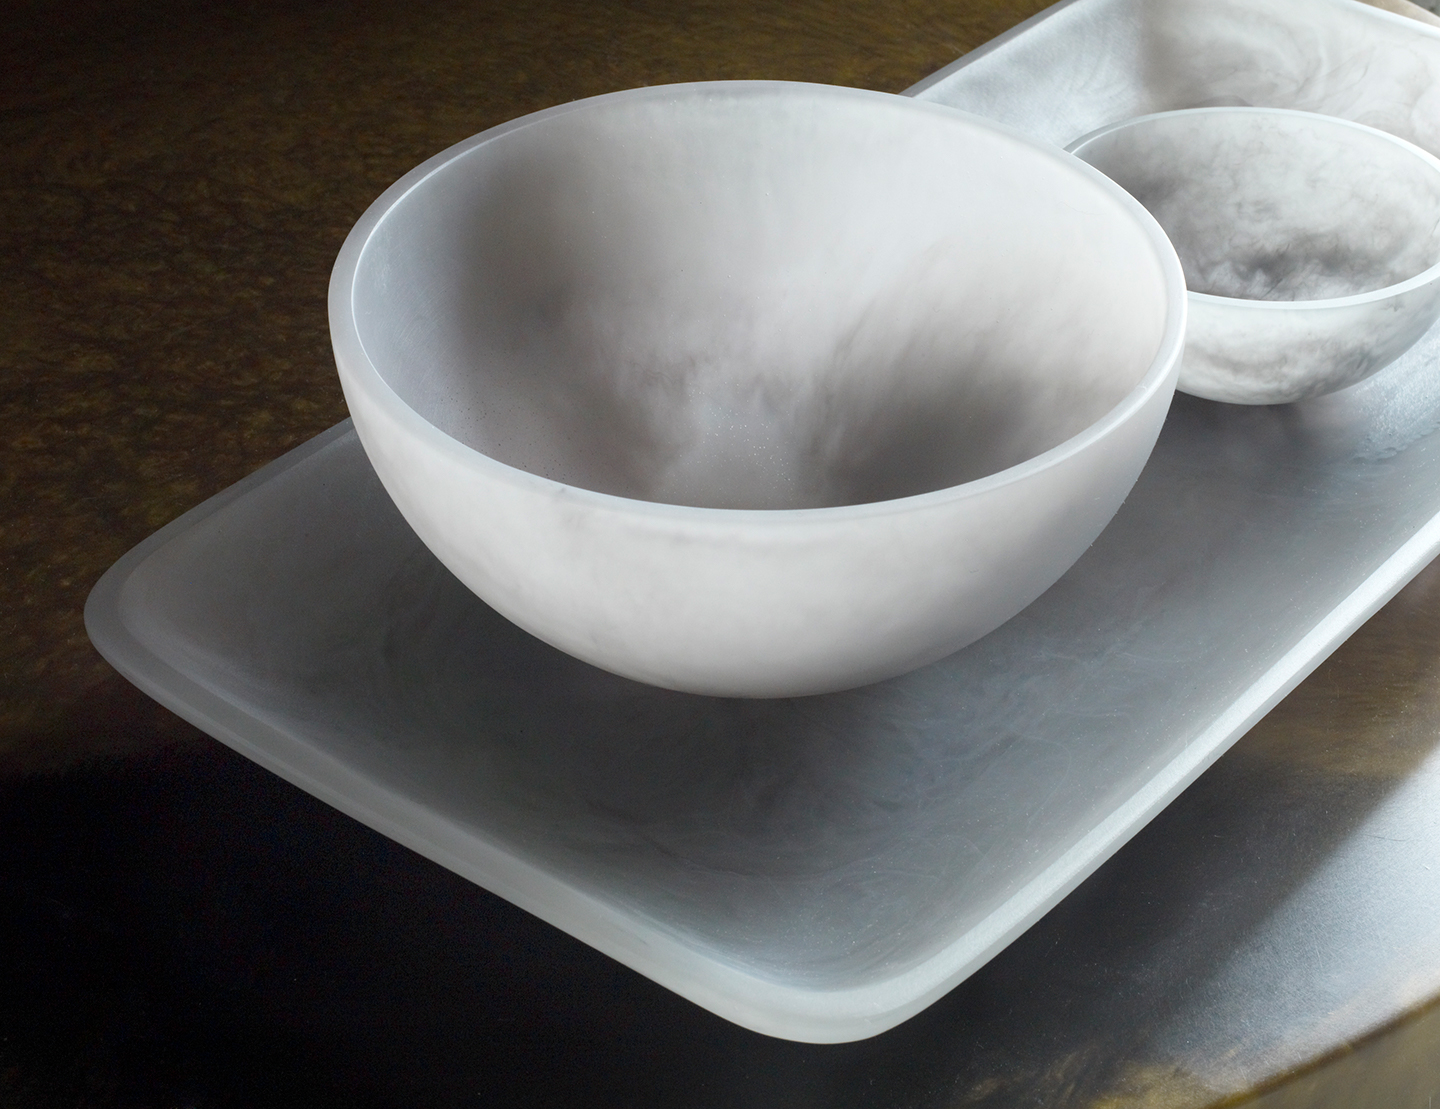 resin bowls and serving platter